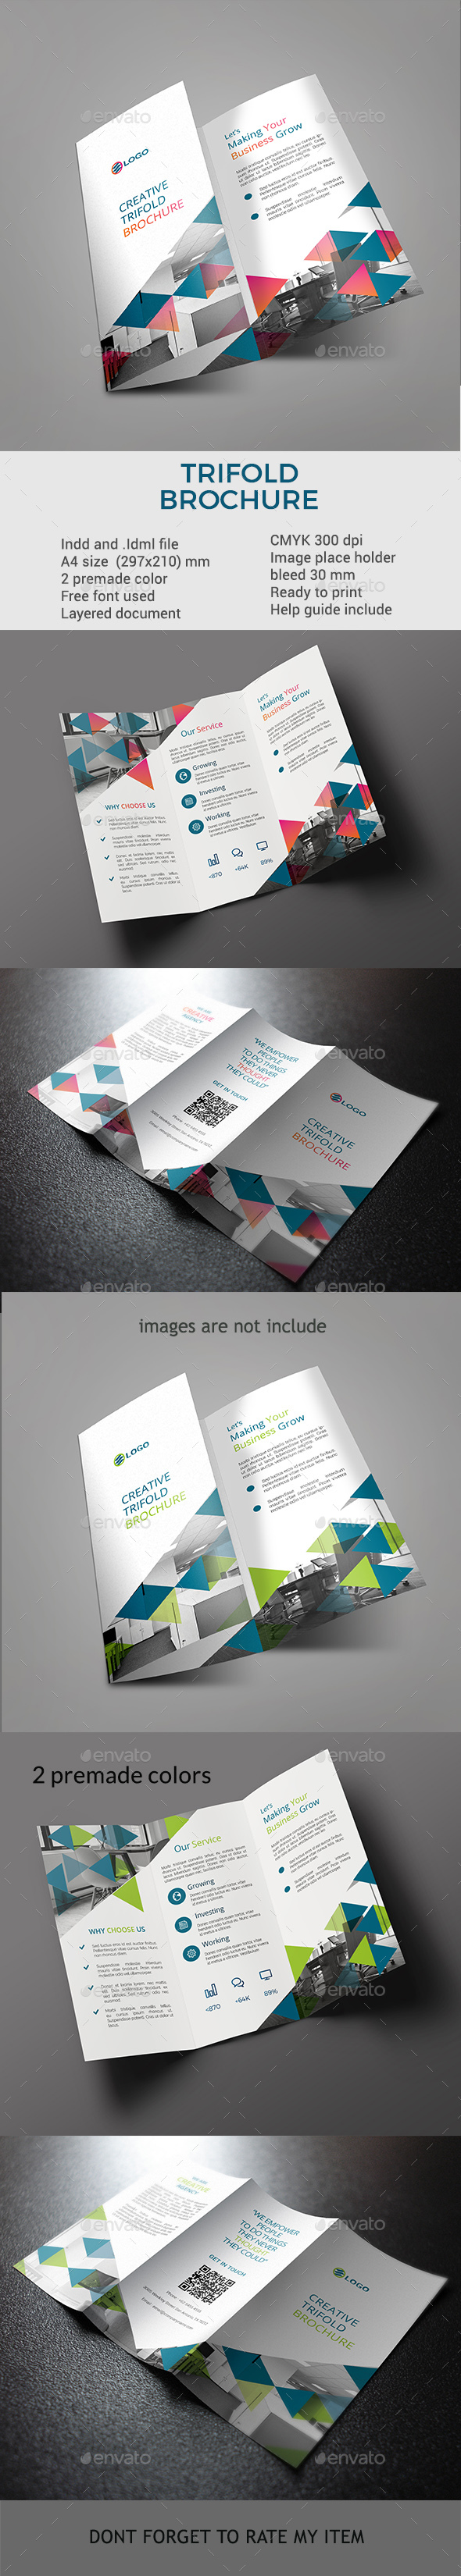 GraphicRiver Trifold Brochure template 21126488